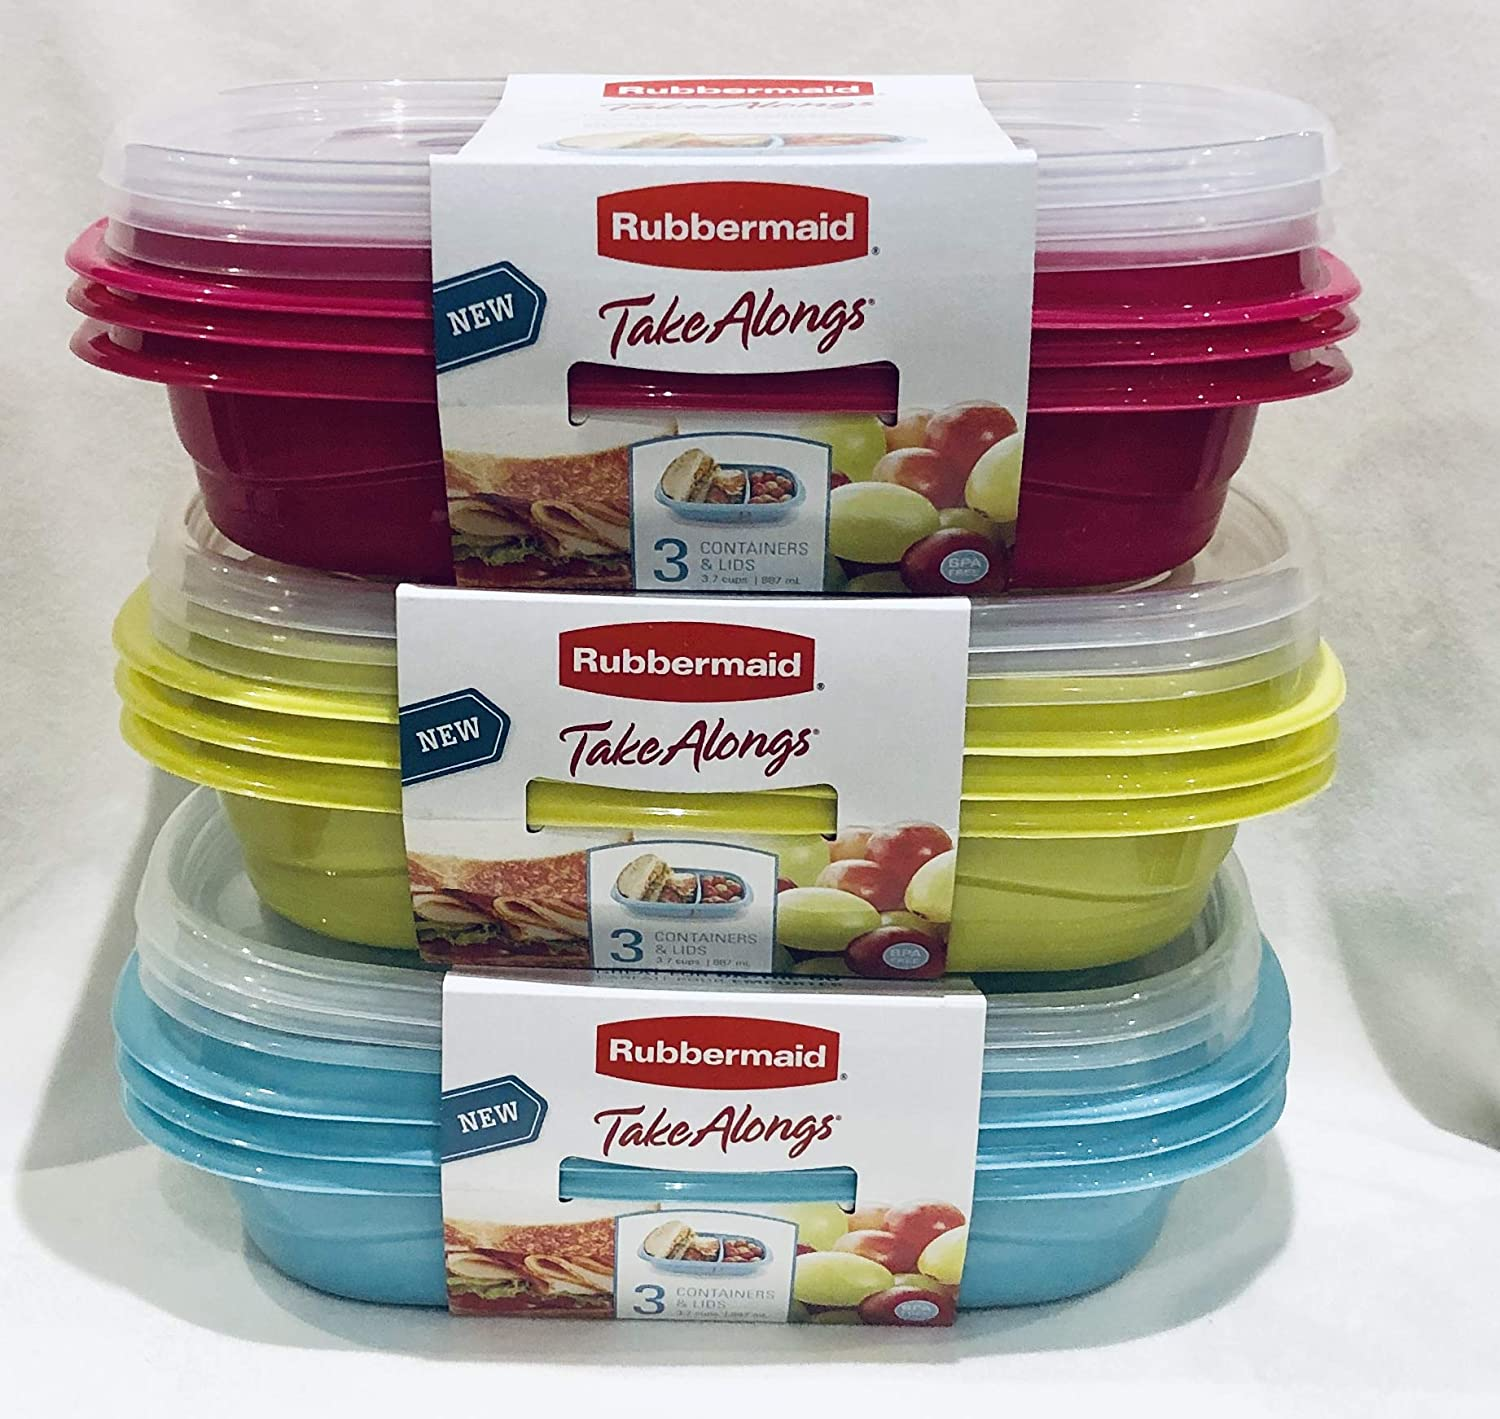 Rubbermaid TakeAlongs 18-Piece Set Divided-Base Meal Prep Food Storage Containers (9 Bases + 9 Lids) 3.7 cups TROPICAL PINK/TEAL/CITRON